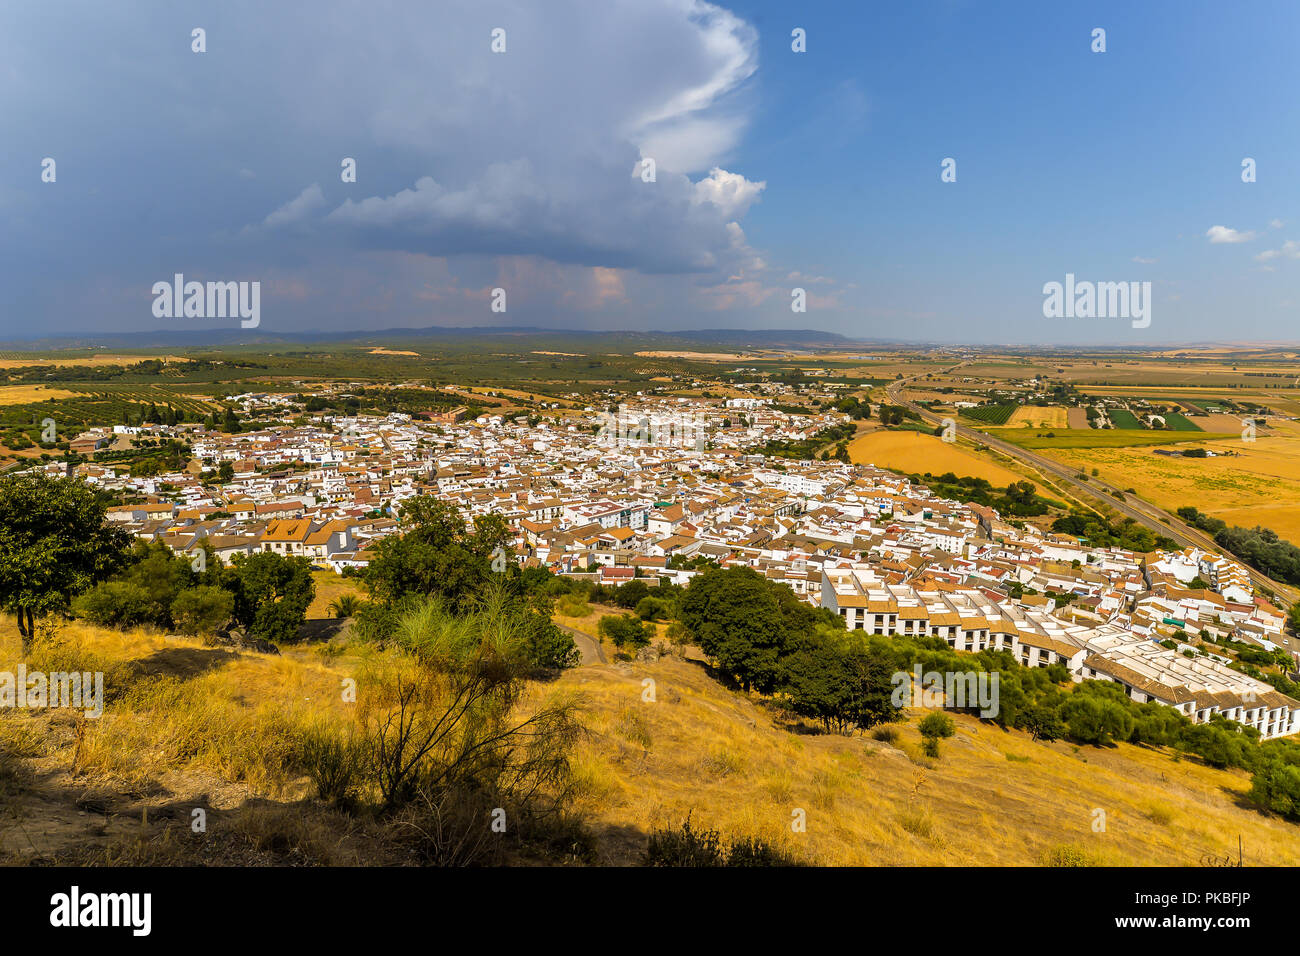 The view from the castle - Almodovar del Rio, Spain - Stock Image